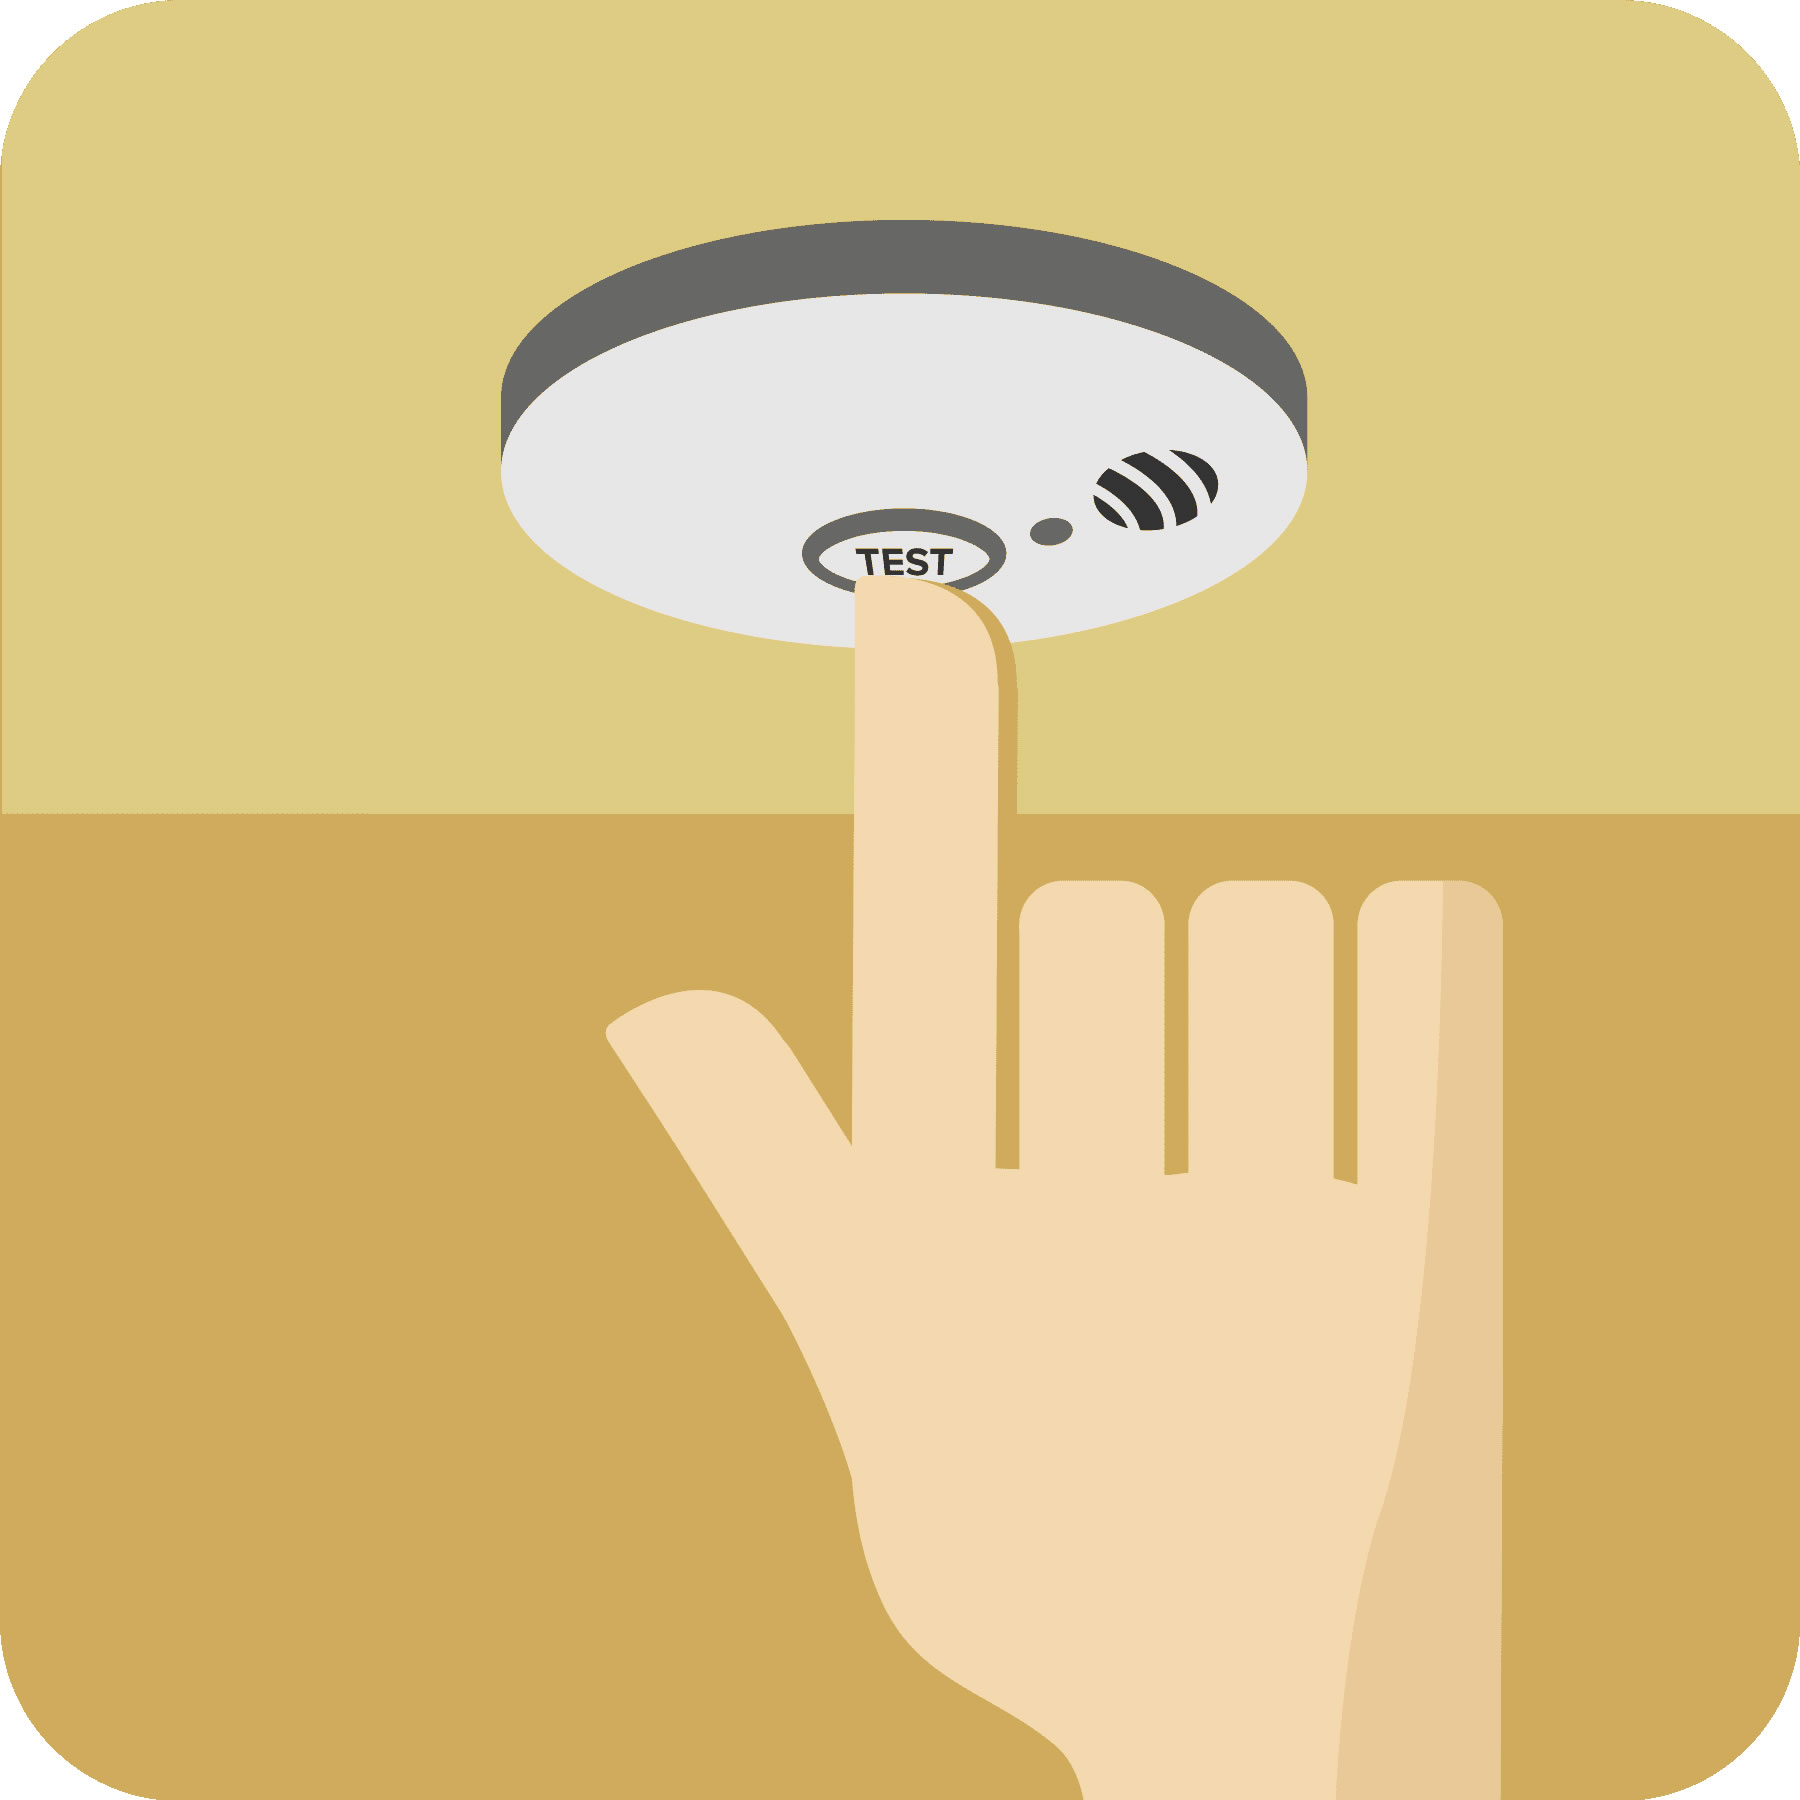 A hand pressing the test button on the smoke alarm